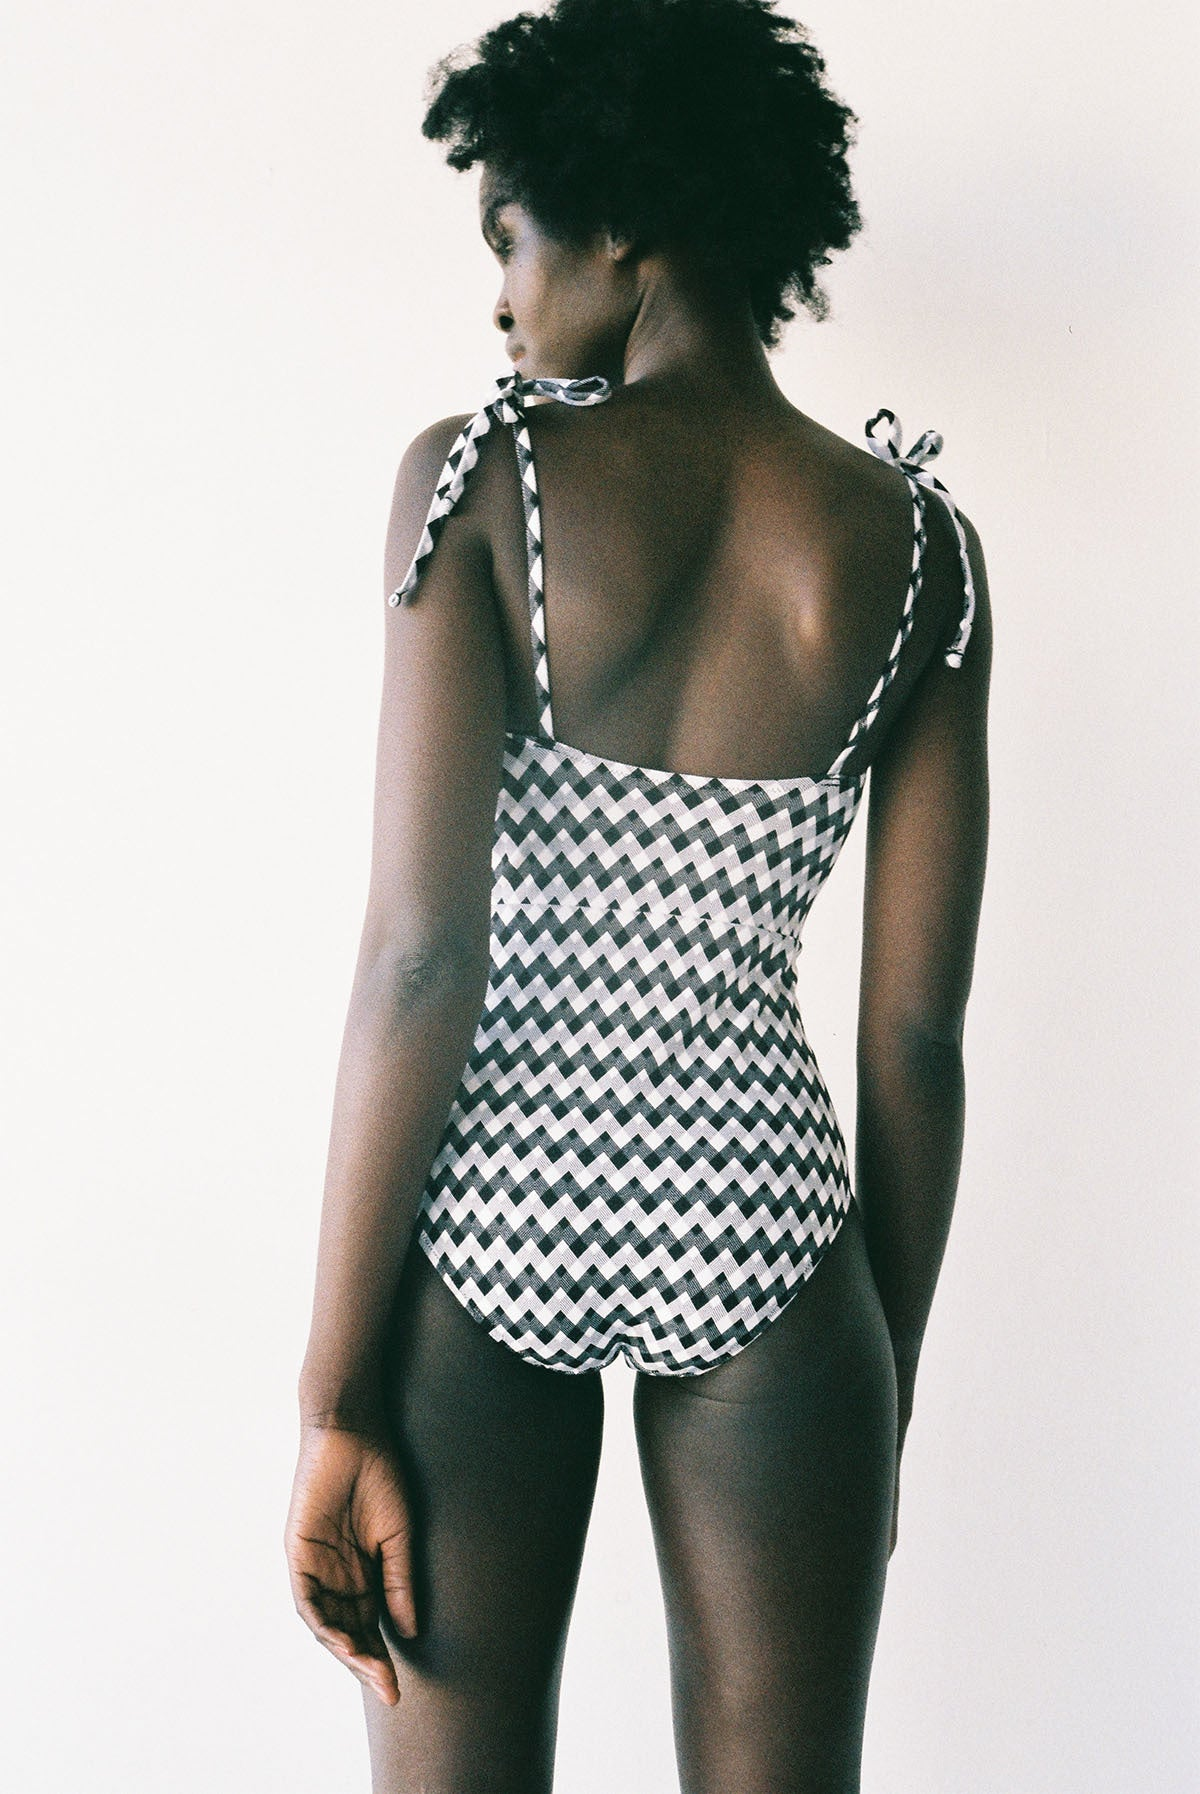 Doris Gingham Zig Zag black and white Swimsuit onepiece Lonely Swimwear Black and White Zig Zag Gingham High waisted togs lonely girls stockists auckland shop online buy nz designer clothing